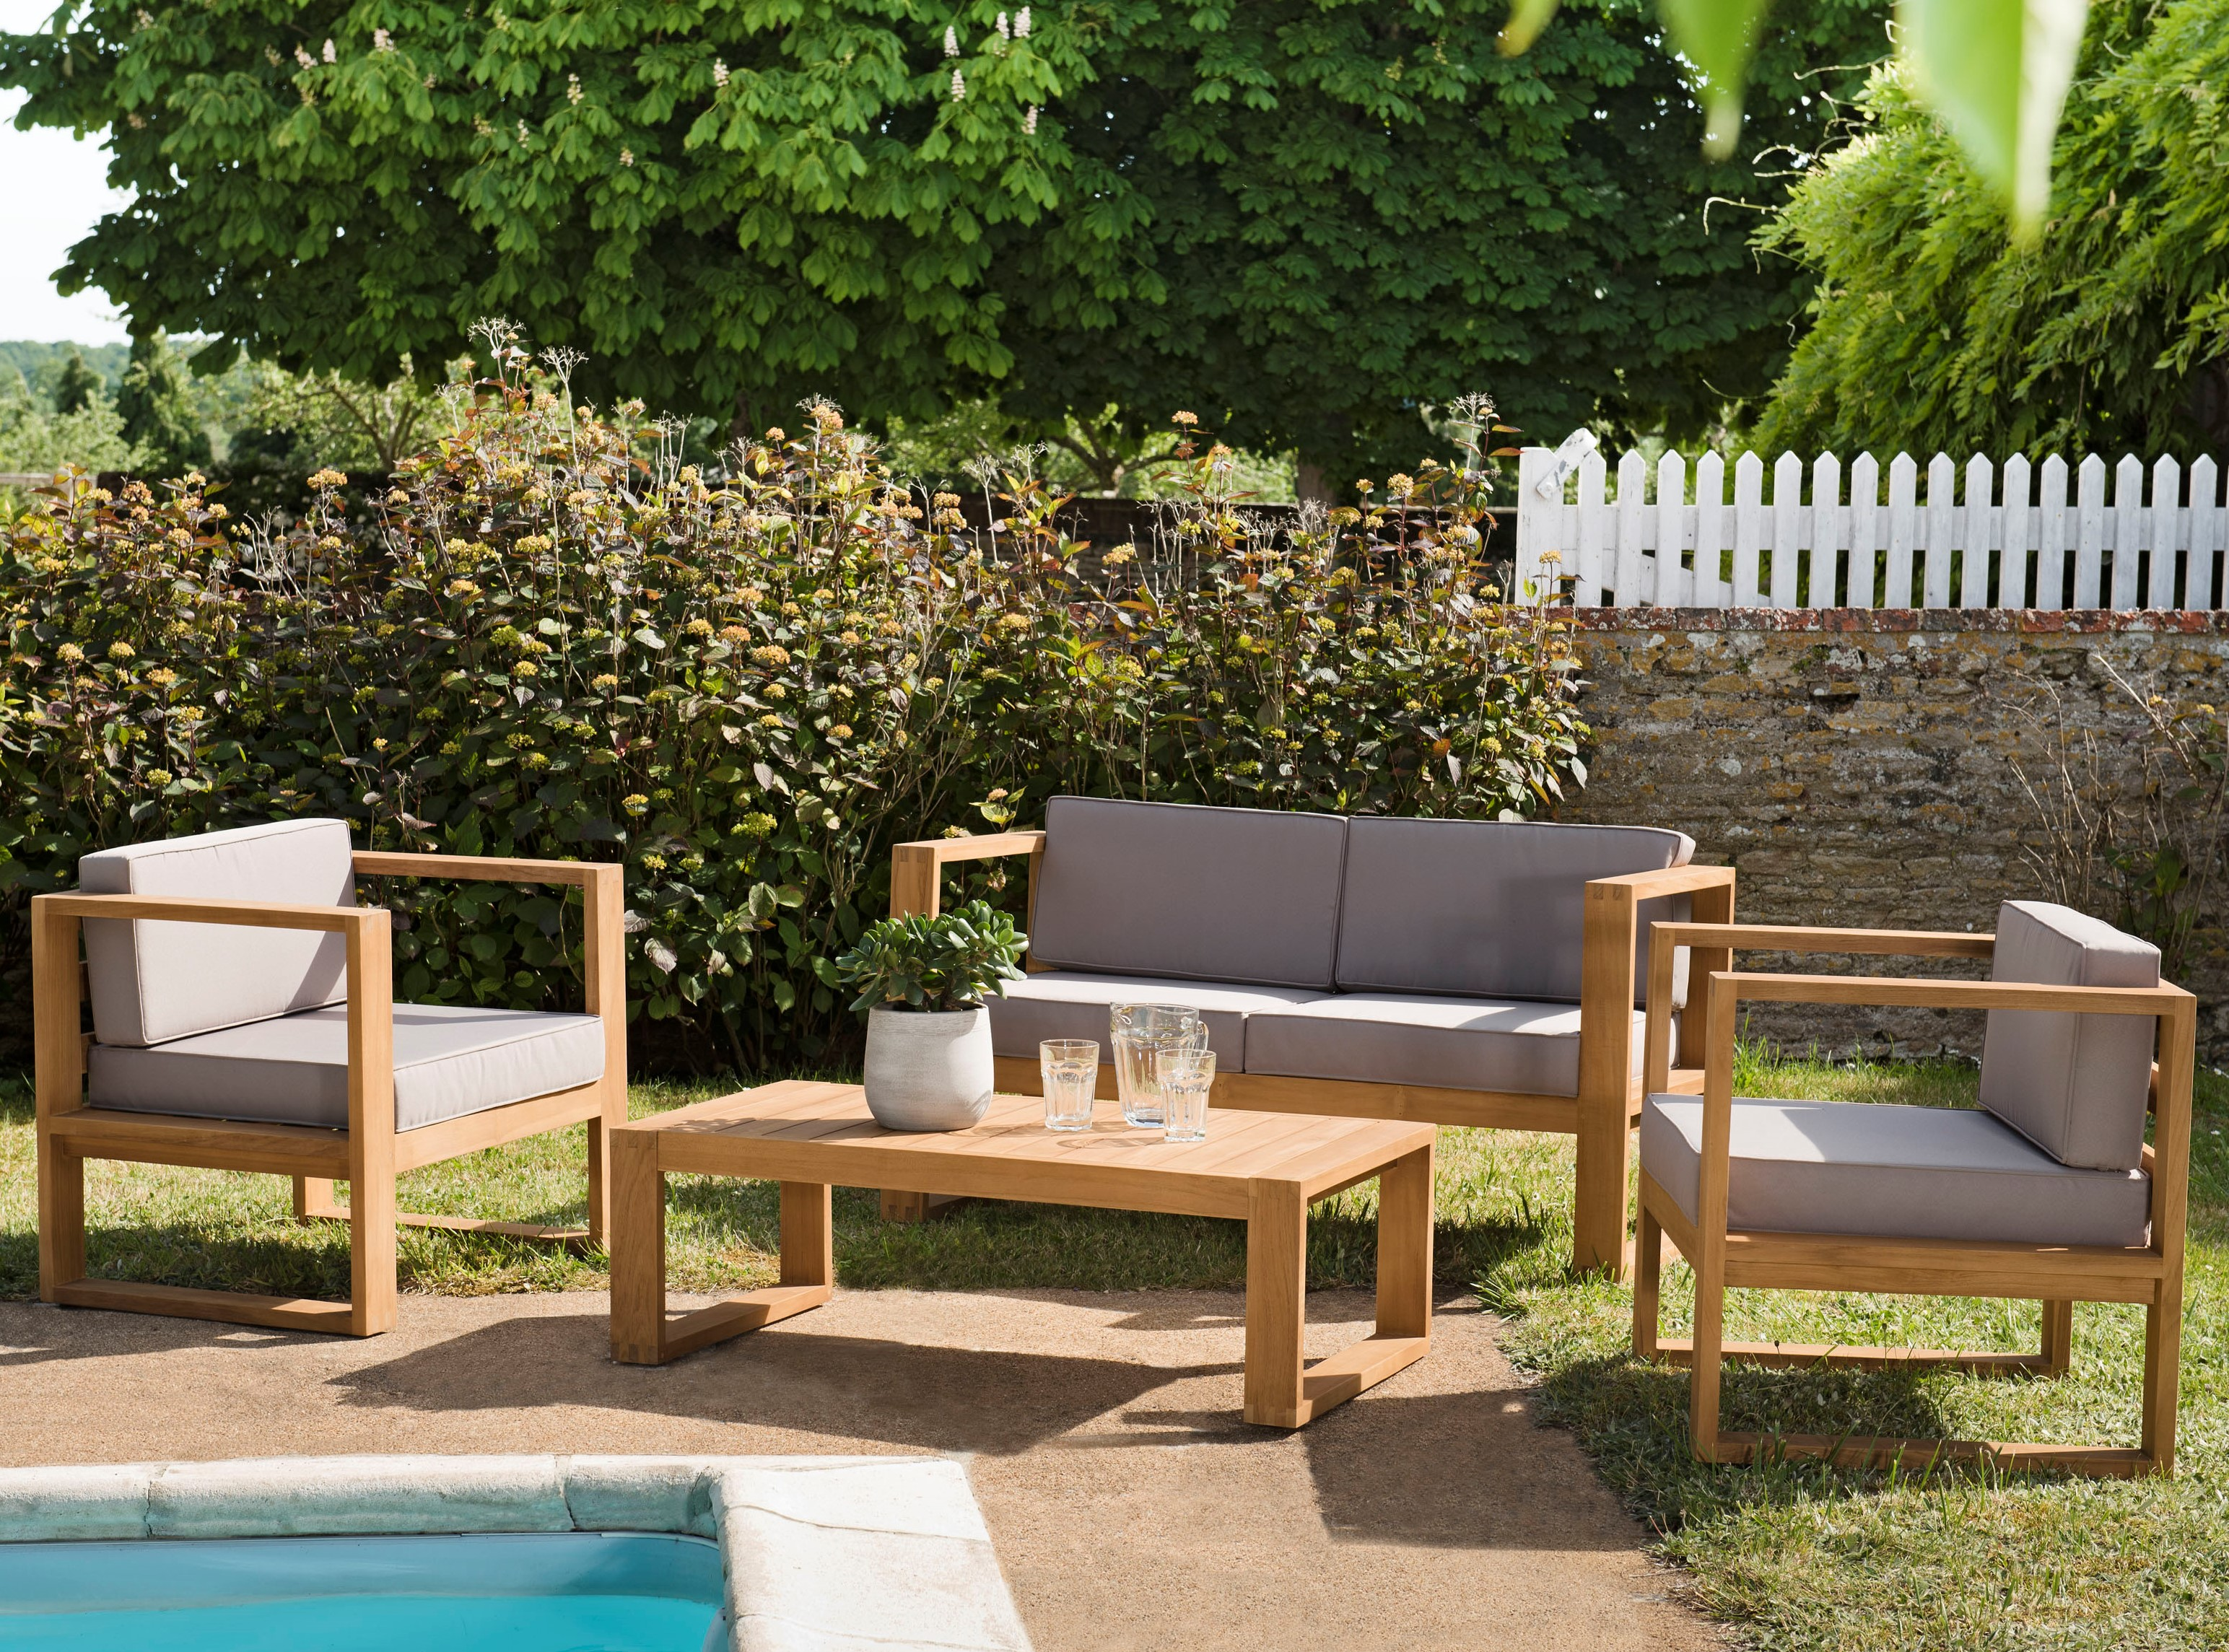 Salon de jardin en teck SUMMER (1 canapé 2 places, 2 fauteuils, 1 table  basse)